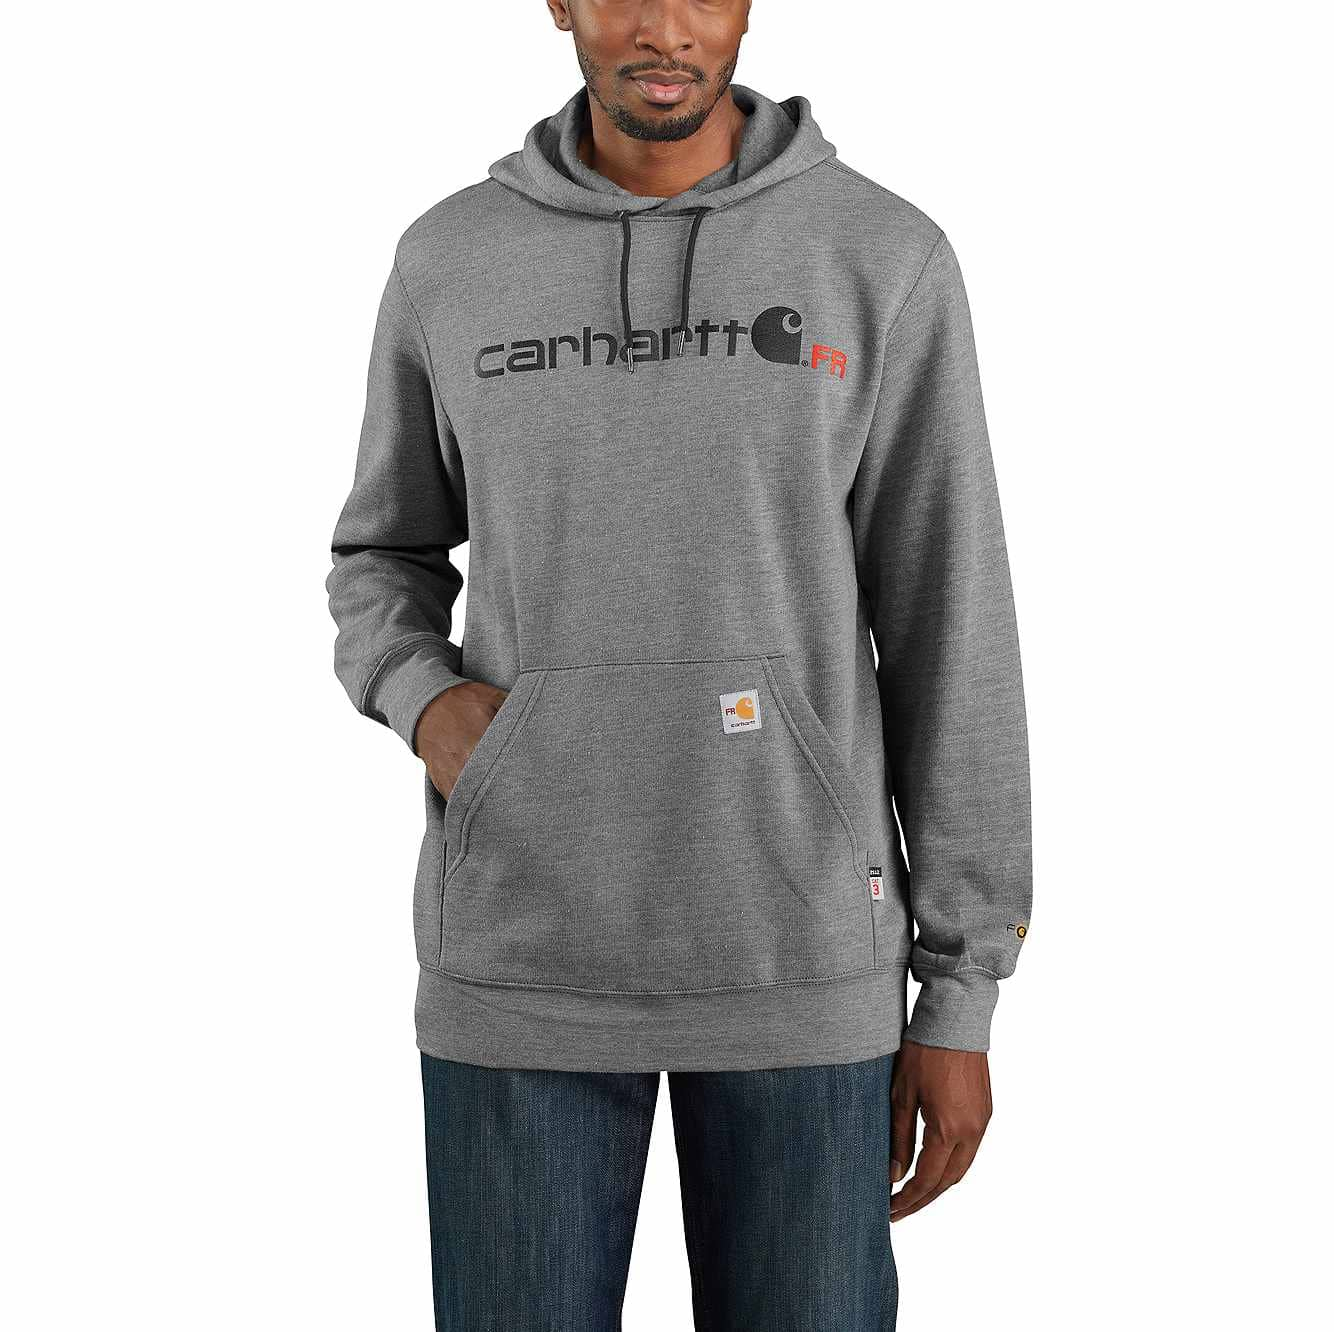 Picture of Flame-Resistant Force Original Fit Midweight Hooded Logo Graphic Sweatshirt in Granite Heather